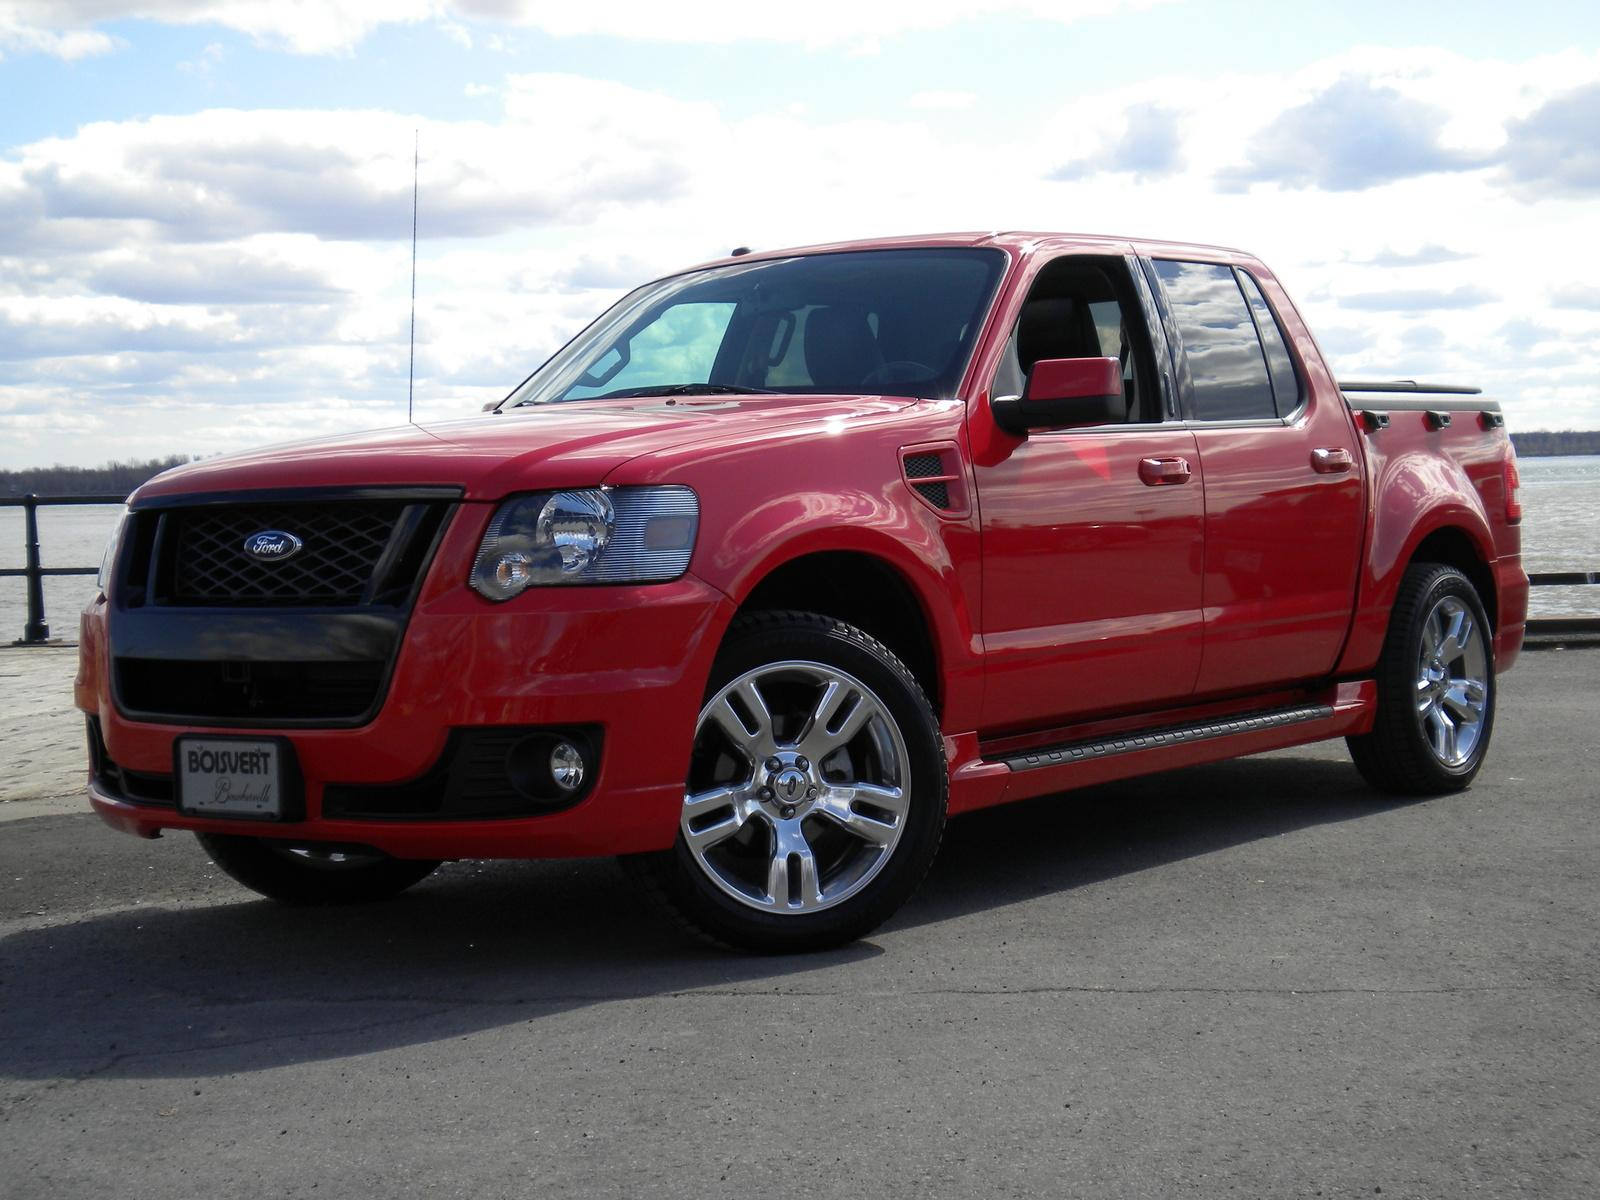 2010 ford explorer sport trac information and photos zombiedrive. Black Bedroom Furniture Sets. Home Design Ideas